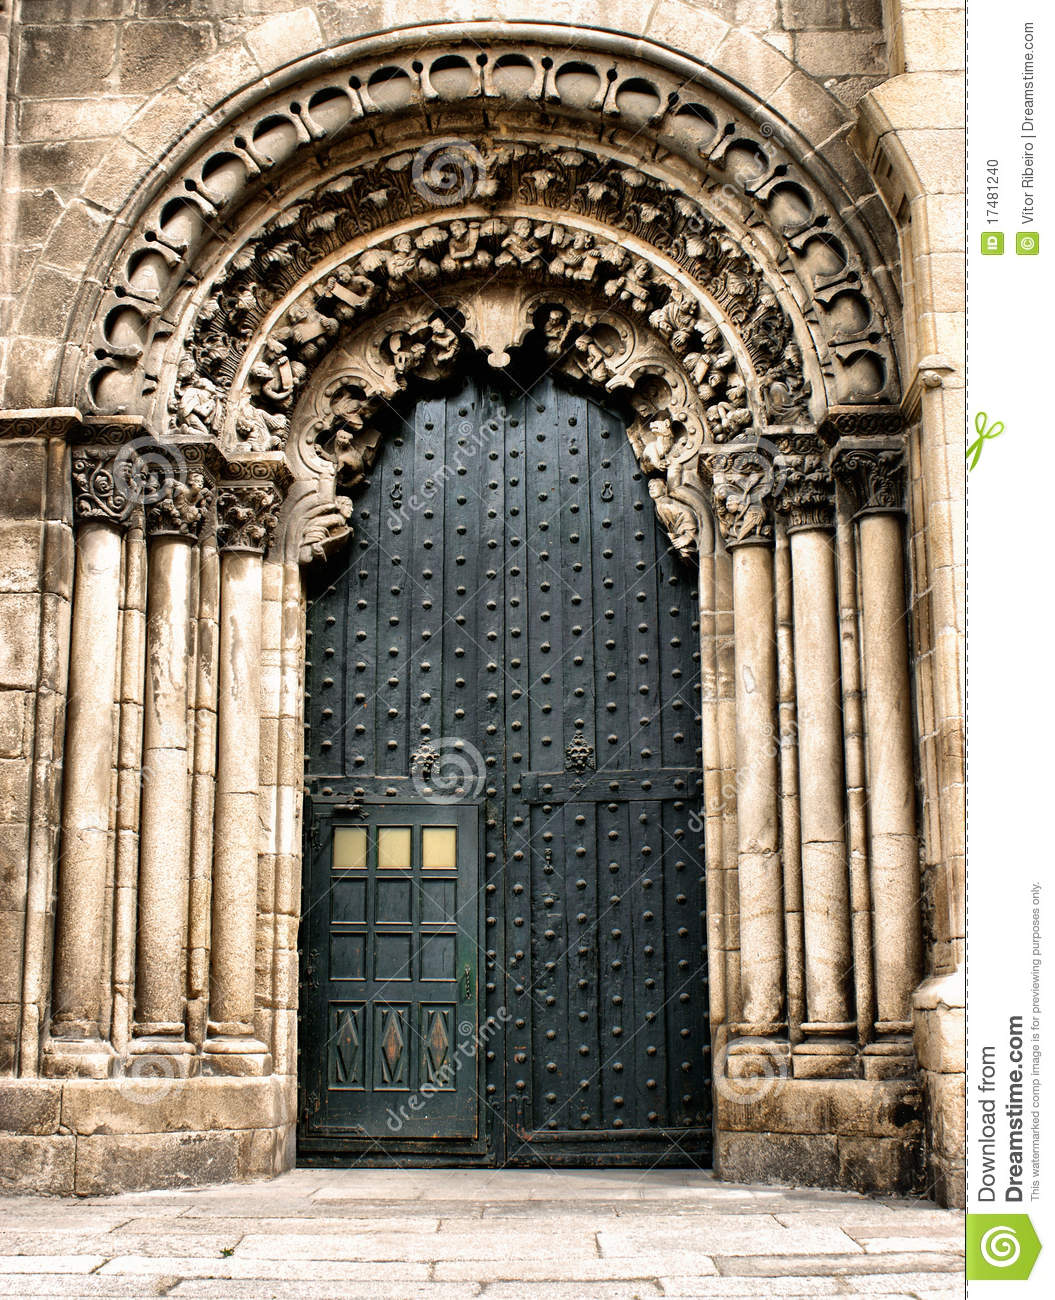 Doorway of Ourense cathedral